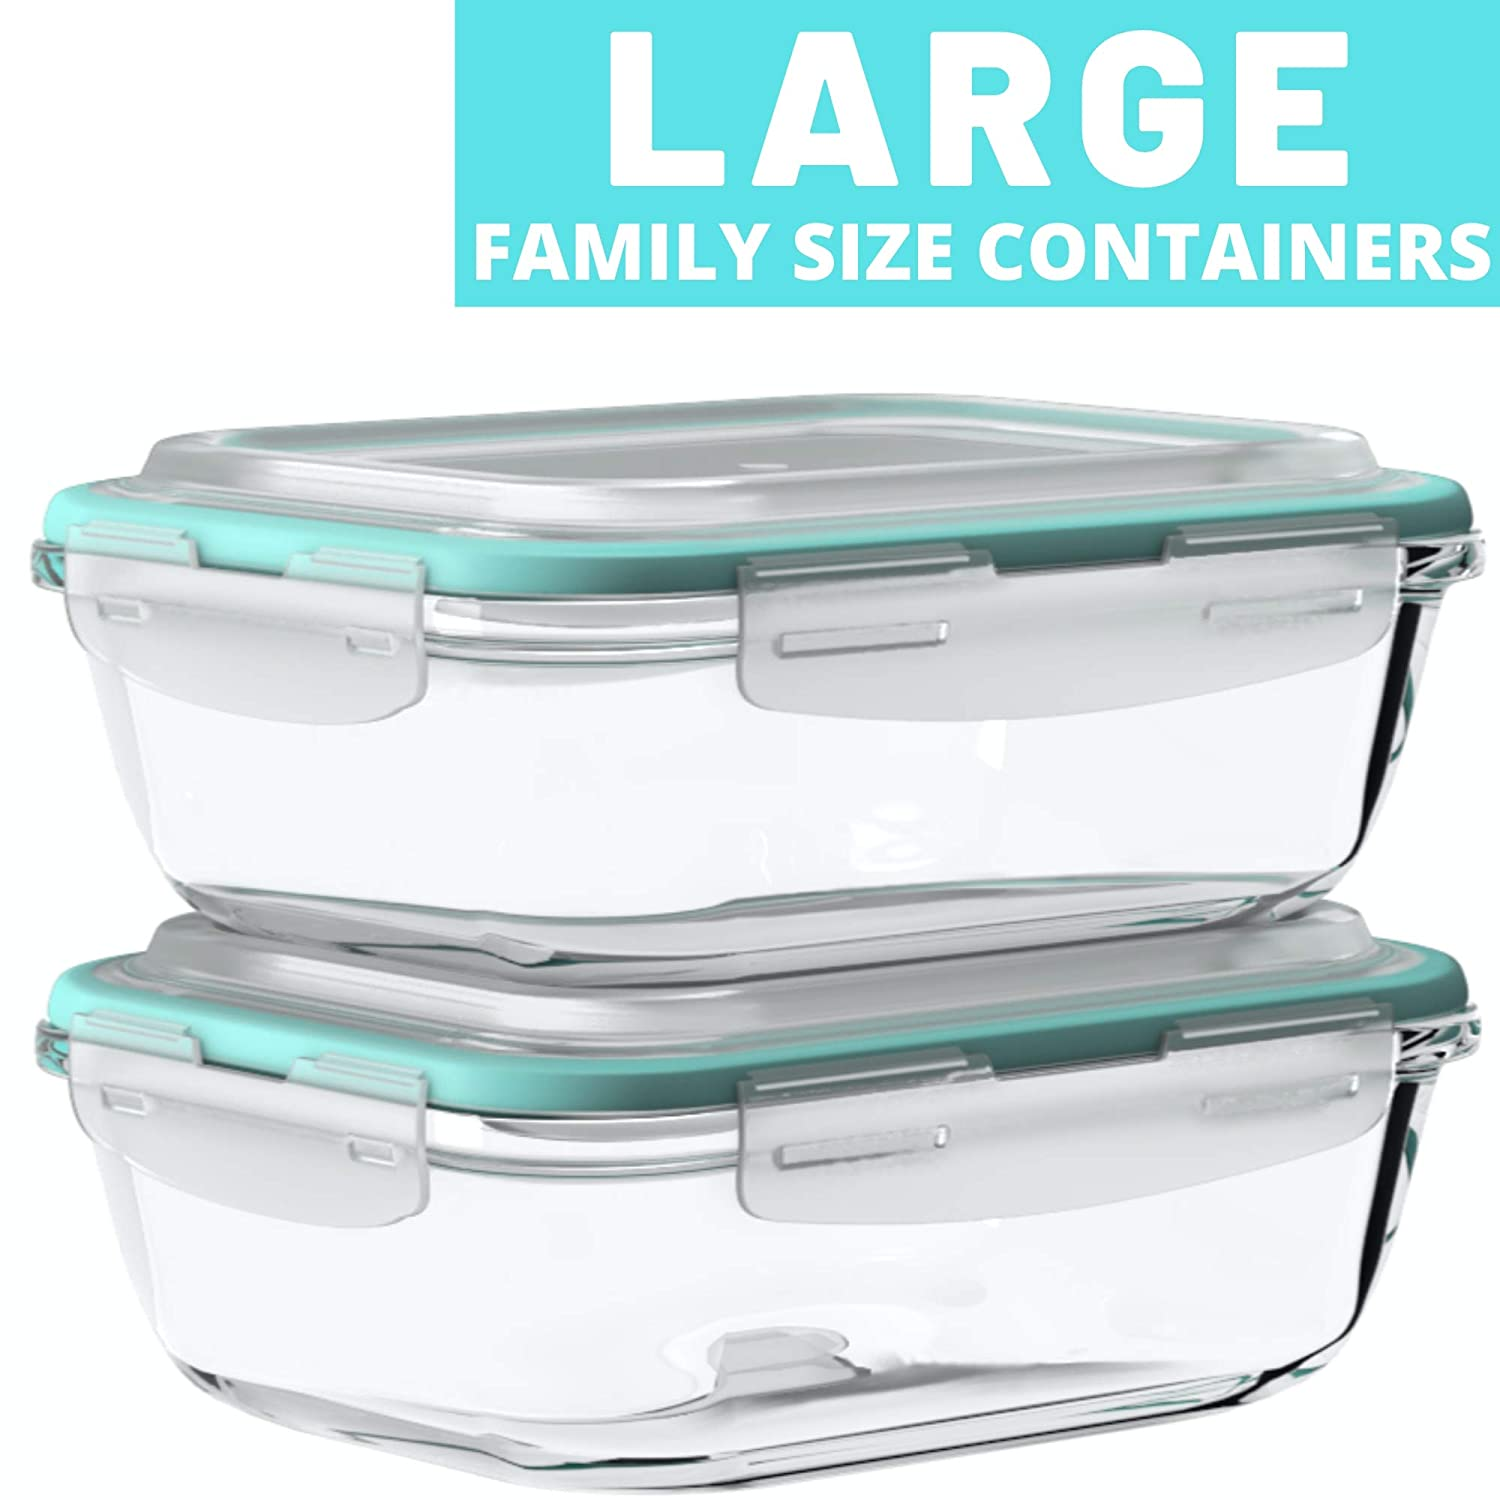 Large Glass Food Storage Containers with Snap Lock Lids for Leftovers - Safe for Microwave, Oven, Dishwasher, Freezer - BPA Free - Airtight & Leakproof [2 Pack]